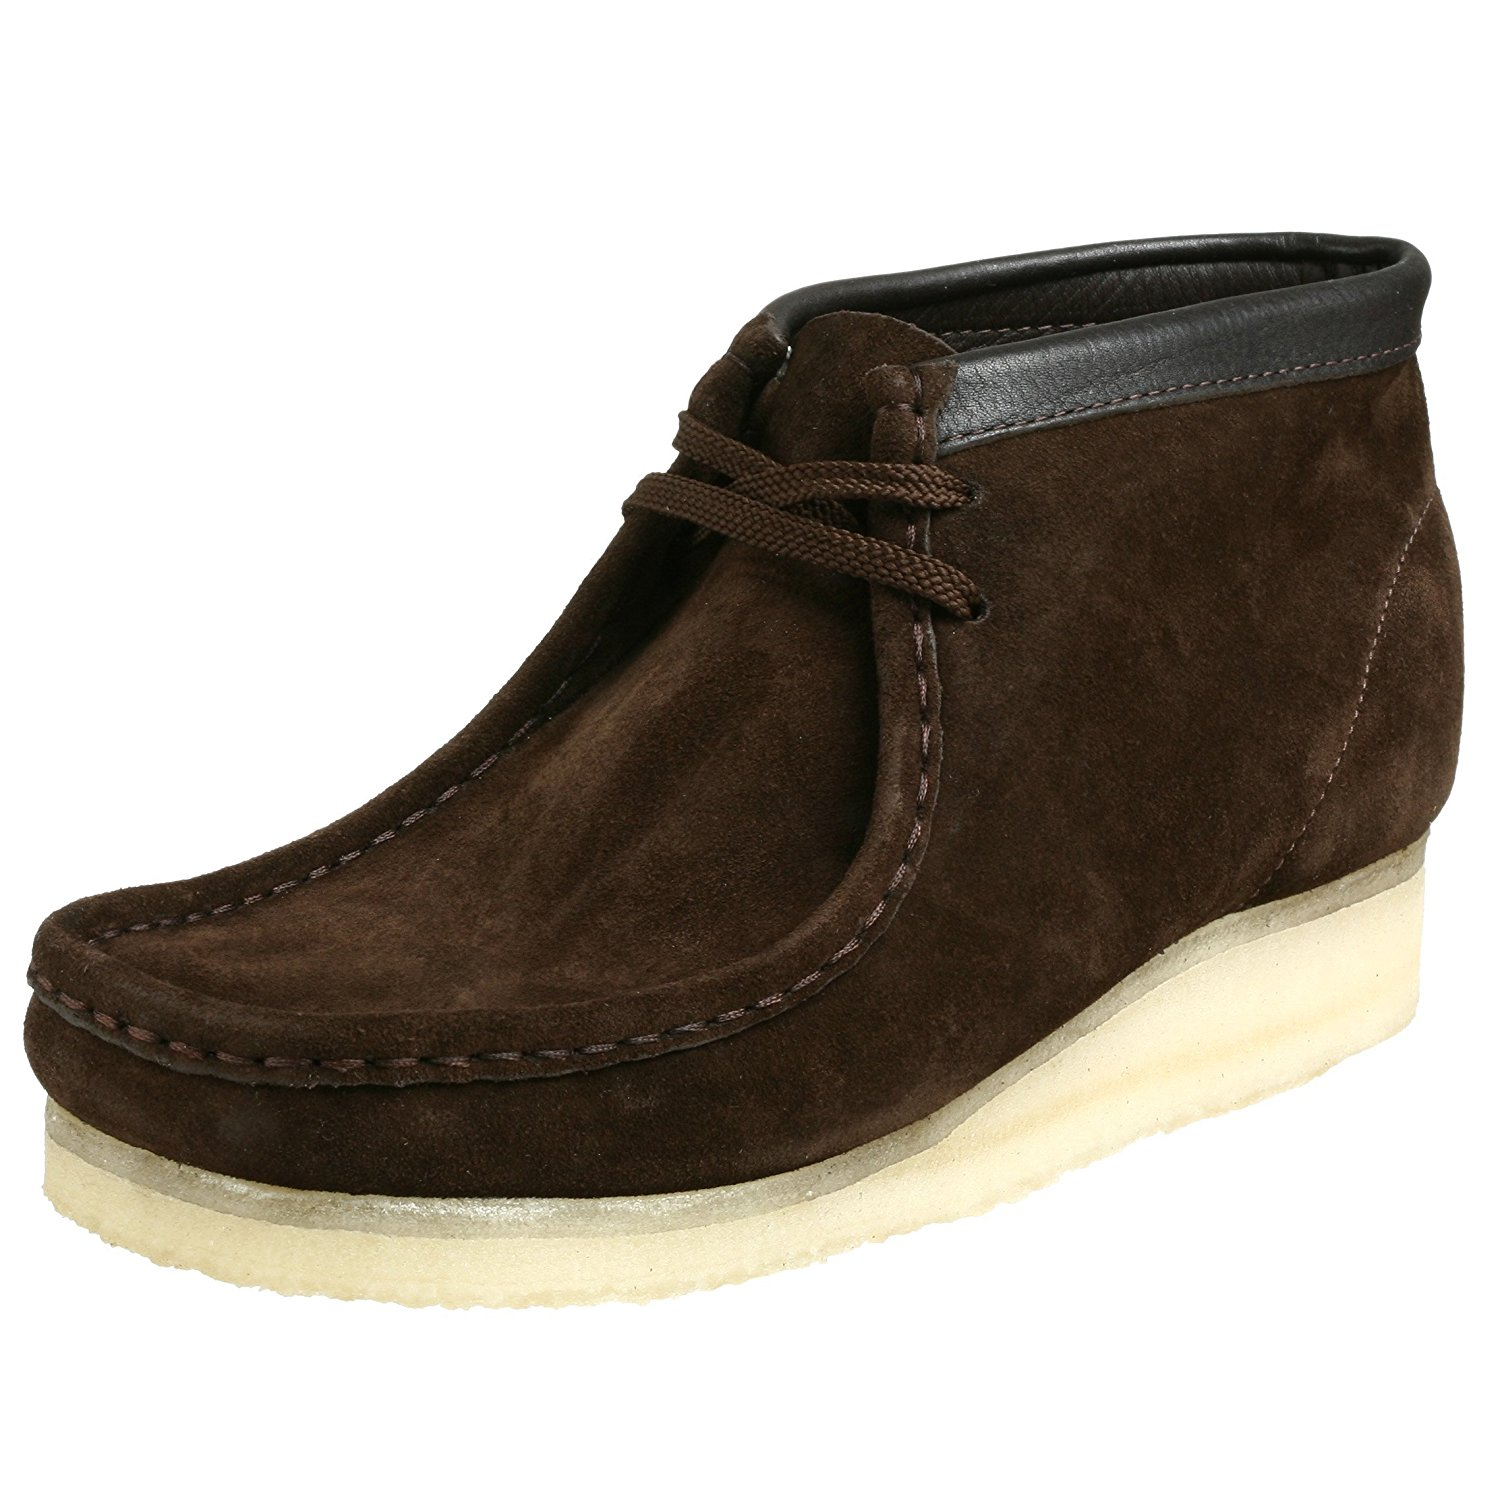 612b9baf717a Get Quotations · CLARKS Men s Wallabee Boot